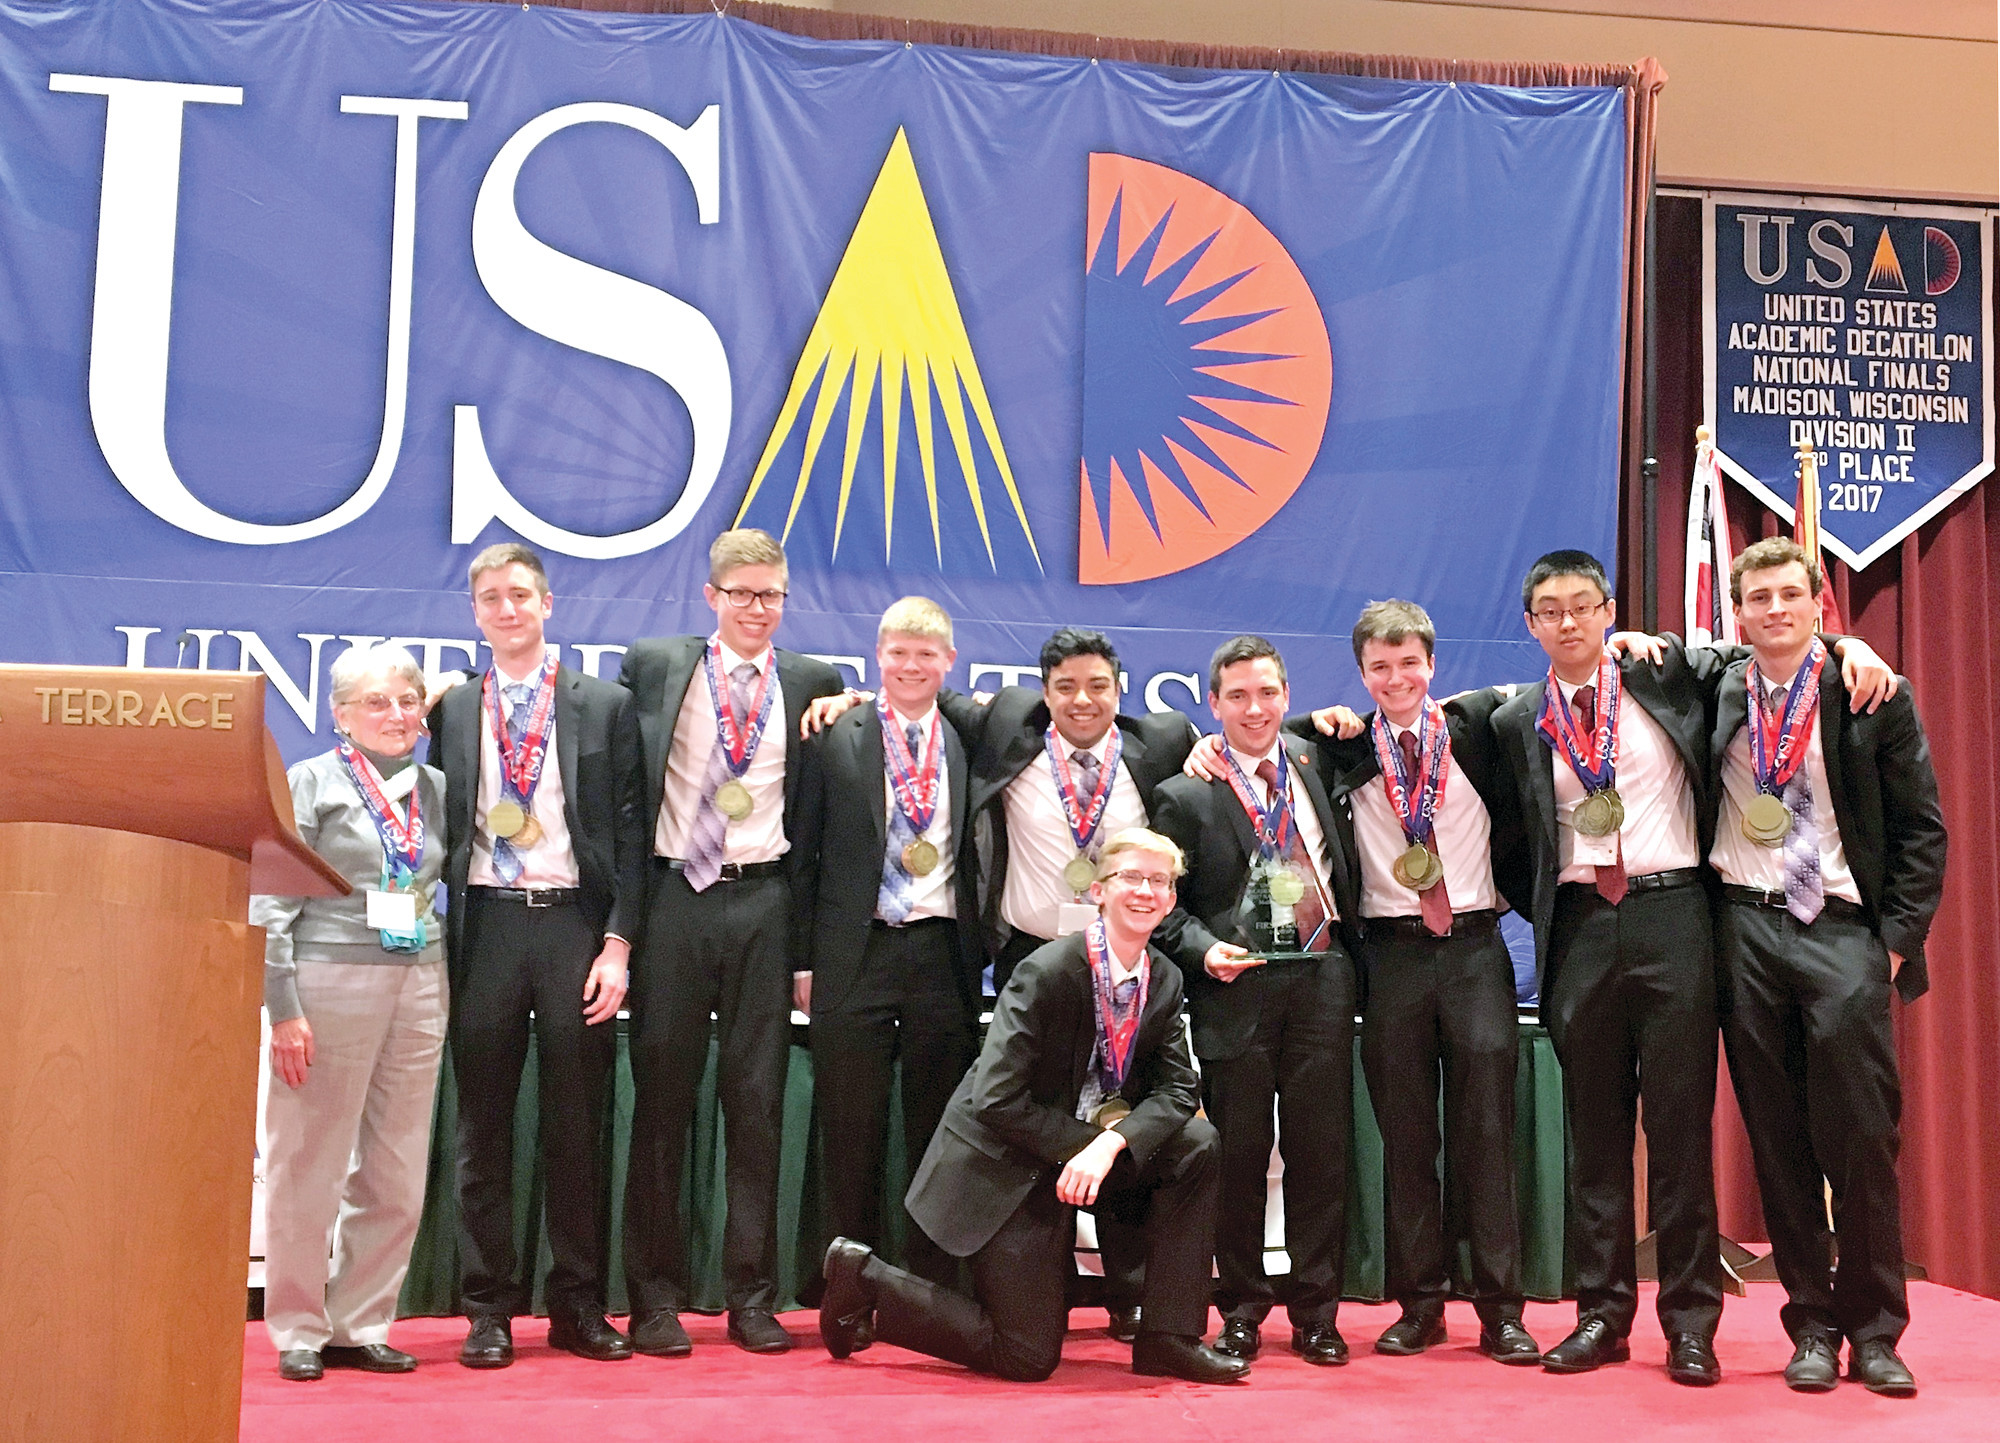 DIVISION WINNERS: The Hendricken Academic Decathlon team placed first in the Division 11 in the United States Academic Decathlon held last week in Madison, Wisconsin. Pictured from left are coach Sister Carol Ann Murray and team members Connor Milson, Darragh Harkin, Alden Pratt, Jaidan Idarraga, Cory Morris, Dylan Temel, Steven Huang, Ryan Brady and (kneeling in front) Mitchell Boyer.